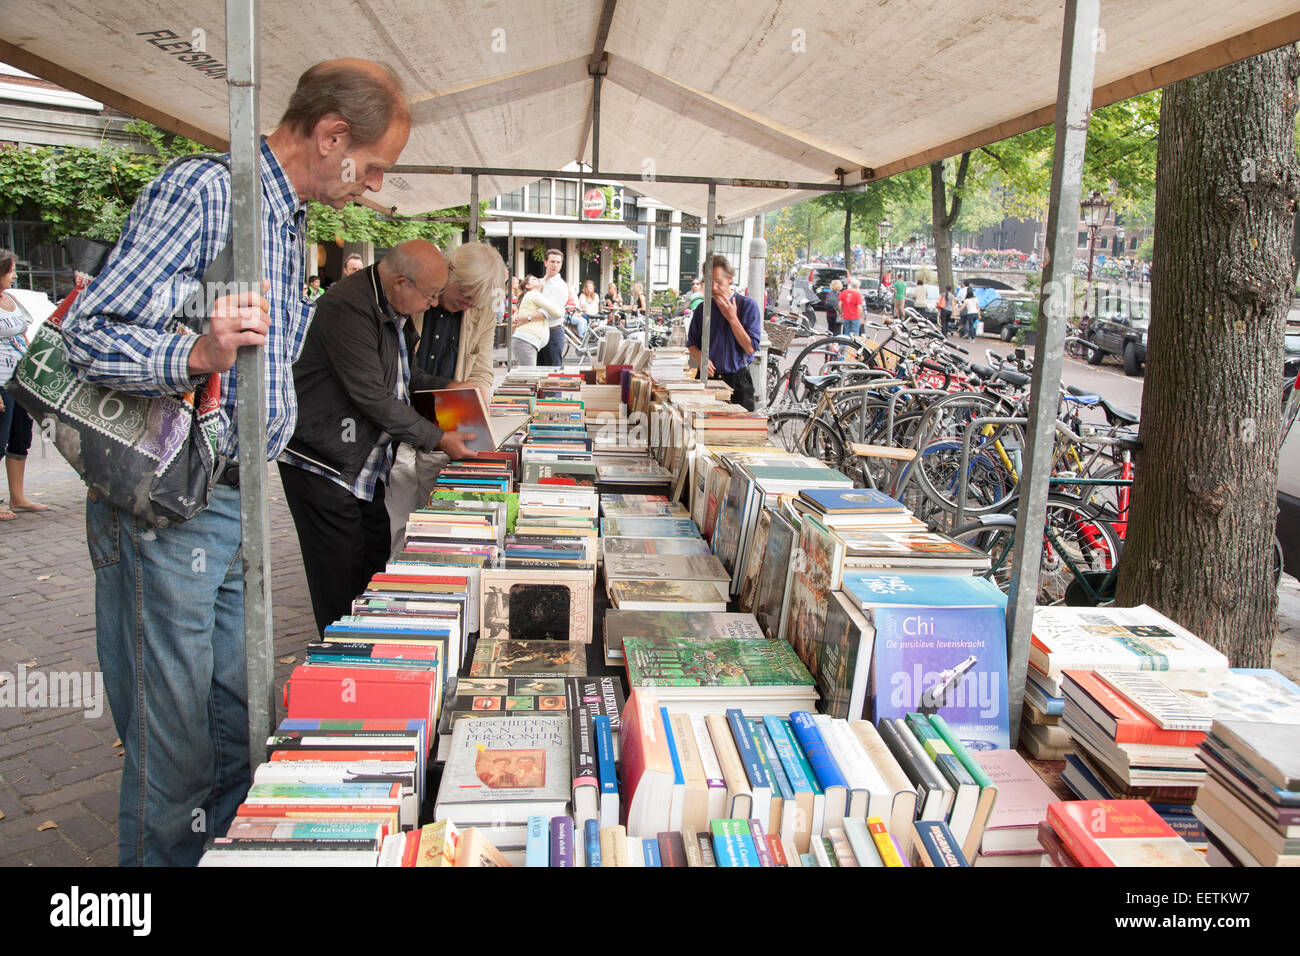 bookshop amsterdam stockfotos bookshop amsterdam bilder alamy. Black Bedroom Furniture Sets. Home Design Ideas